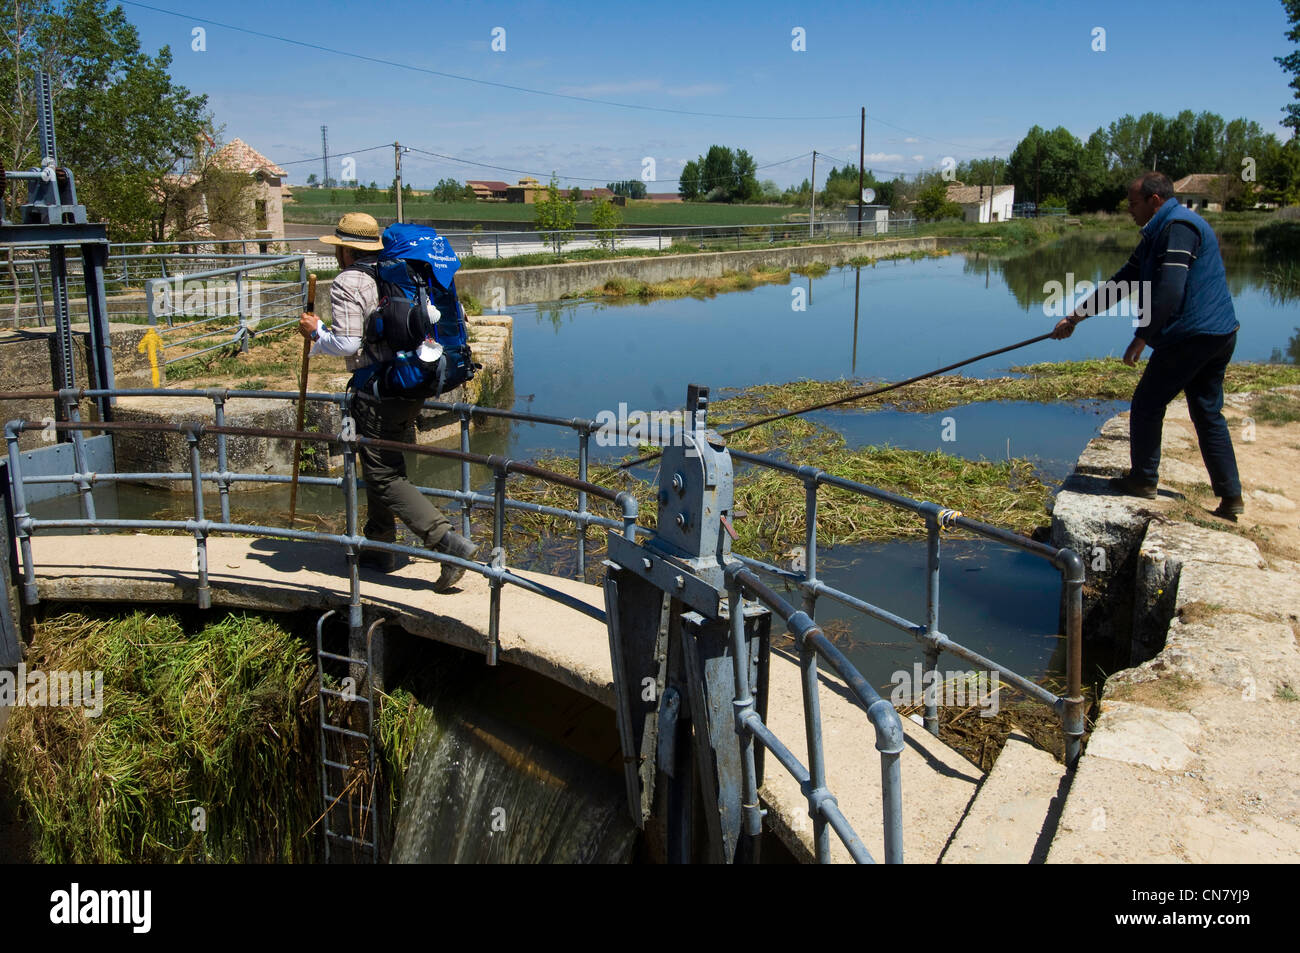 Spain, Castile and Leon, Fromista, a stop on el Camino de Santiago, royal locks, pilgrim and maintenance staff - Stock Image